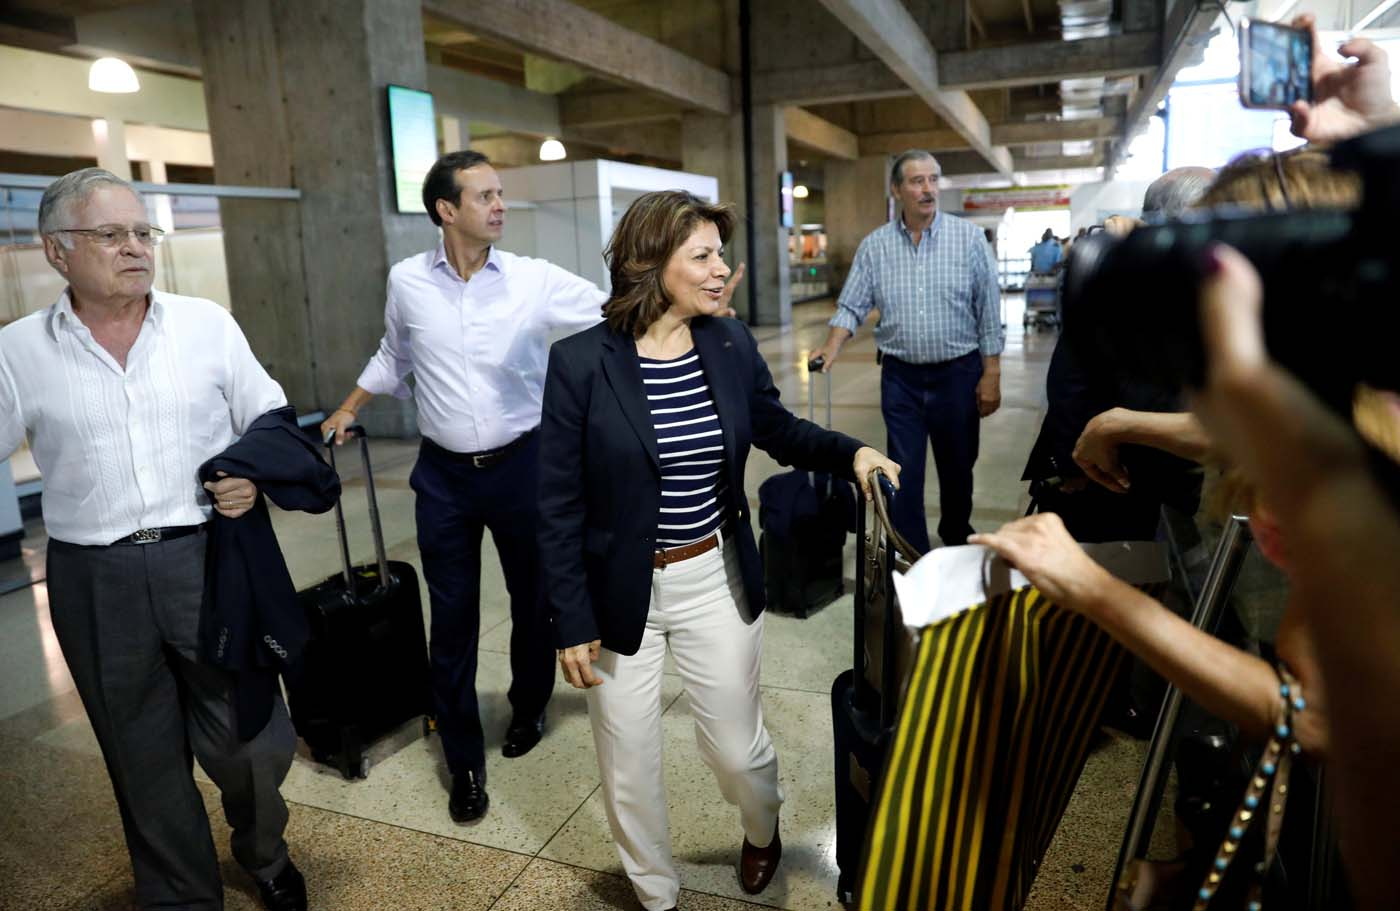 The former presidents of Costa Rica Laura Chinchilla (front R) and Miguel Angel Rodriguez (L), Bolivia's former president Jorge Quiroga (2nd L) and Mexico's former president Vicente Fox arrive at Caracas airport ahead of an unofficial referendum called by the opposition in Venezuela July 15, 2017. REUTERS/Andres Martinez Casares